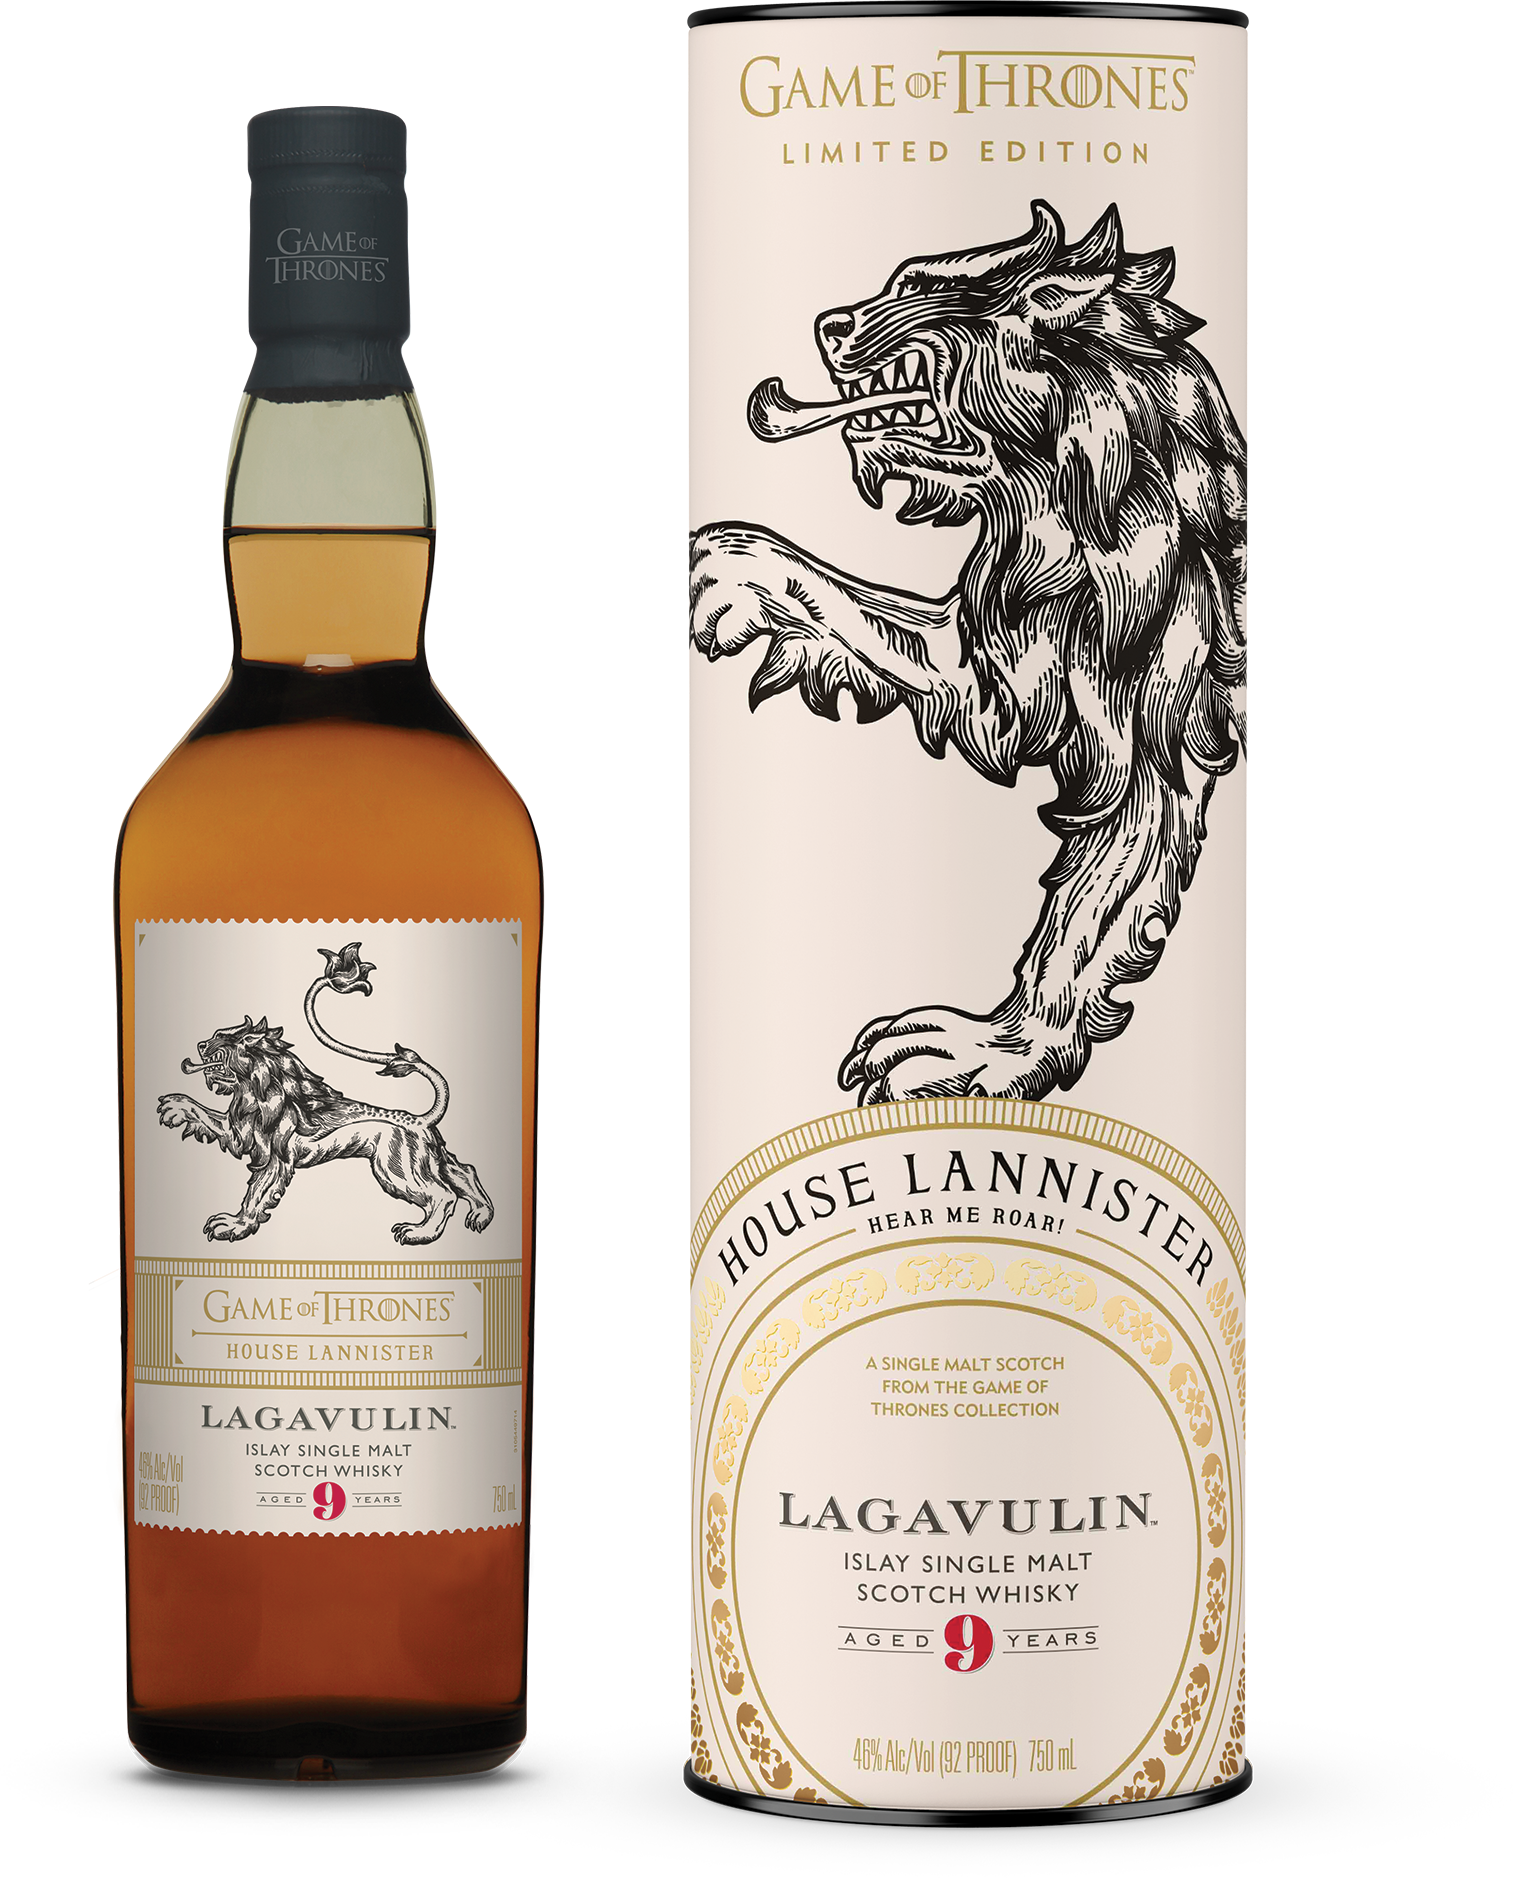 Game Of Thrones Coronated With Limited Edition Scotch Whisky Lineup